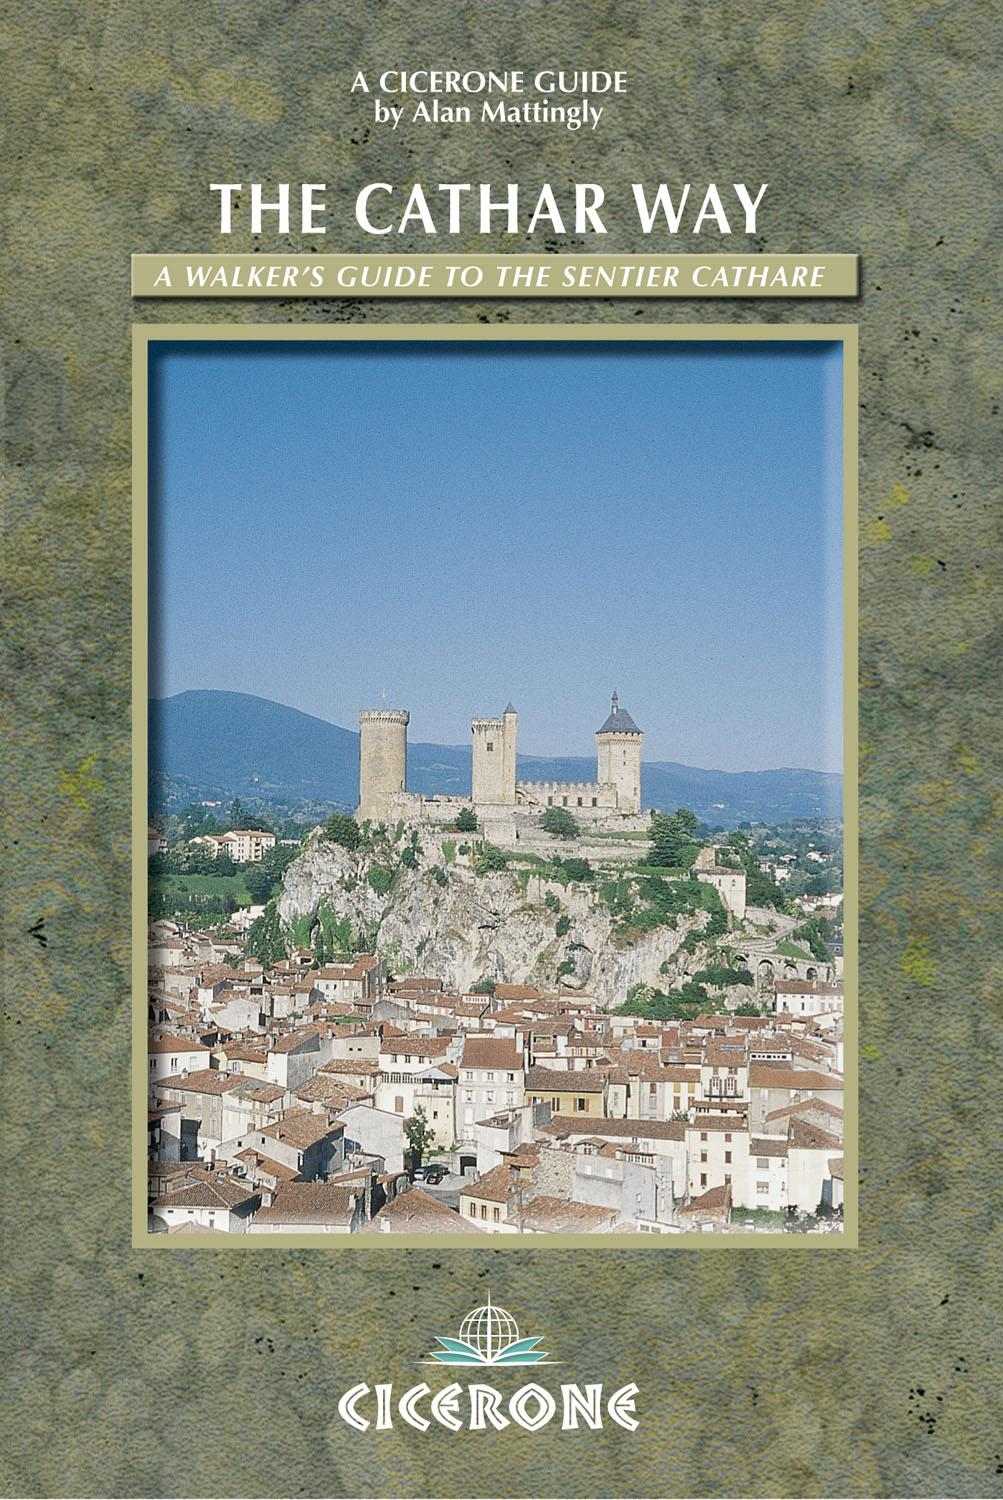 The Cathar Way: A walker's guide to the Sentier Cathare